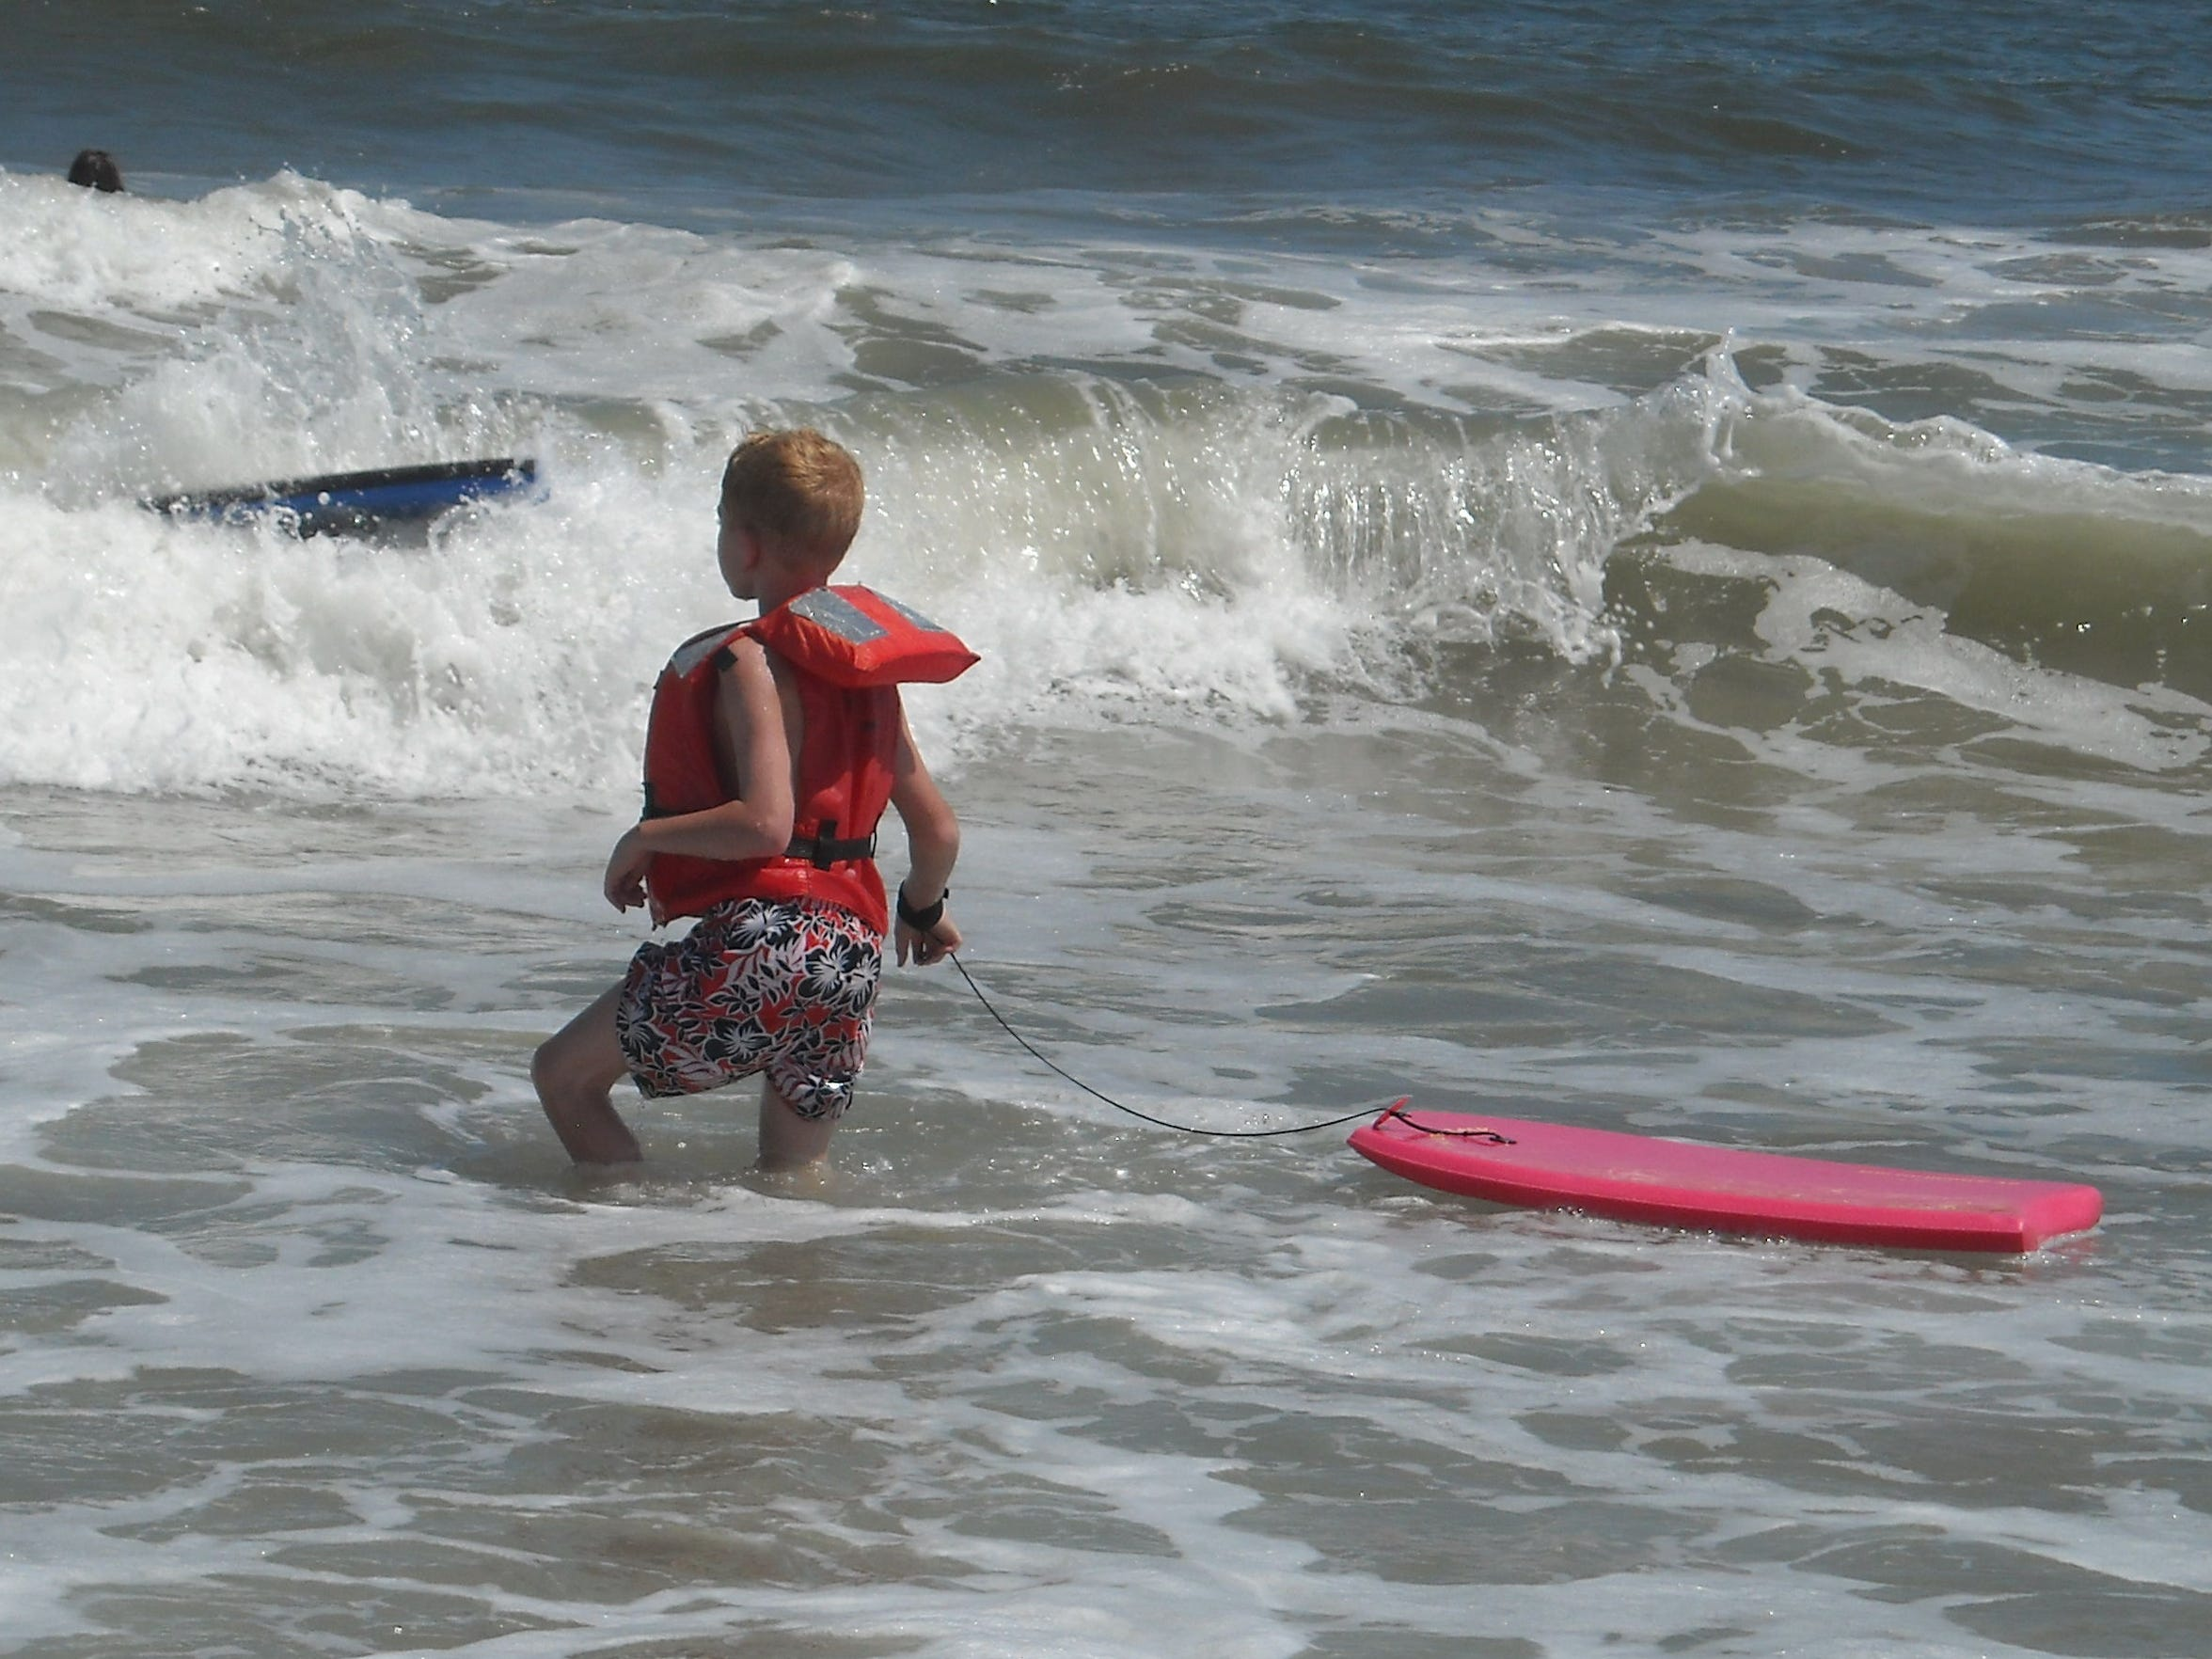 Candon Westervelt boogie boarding during a family vacation